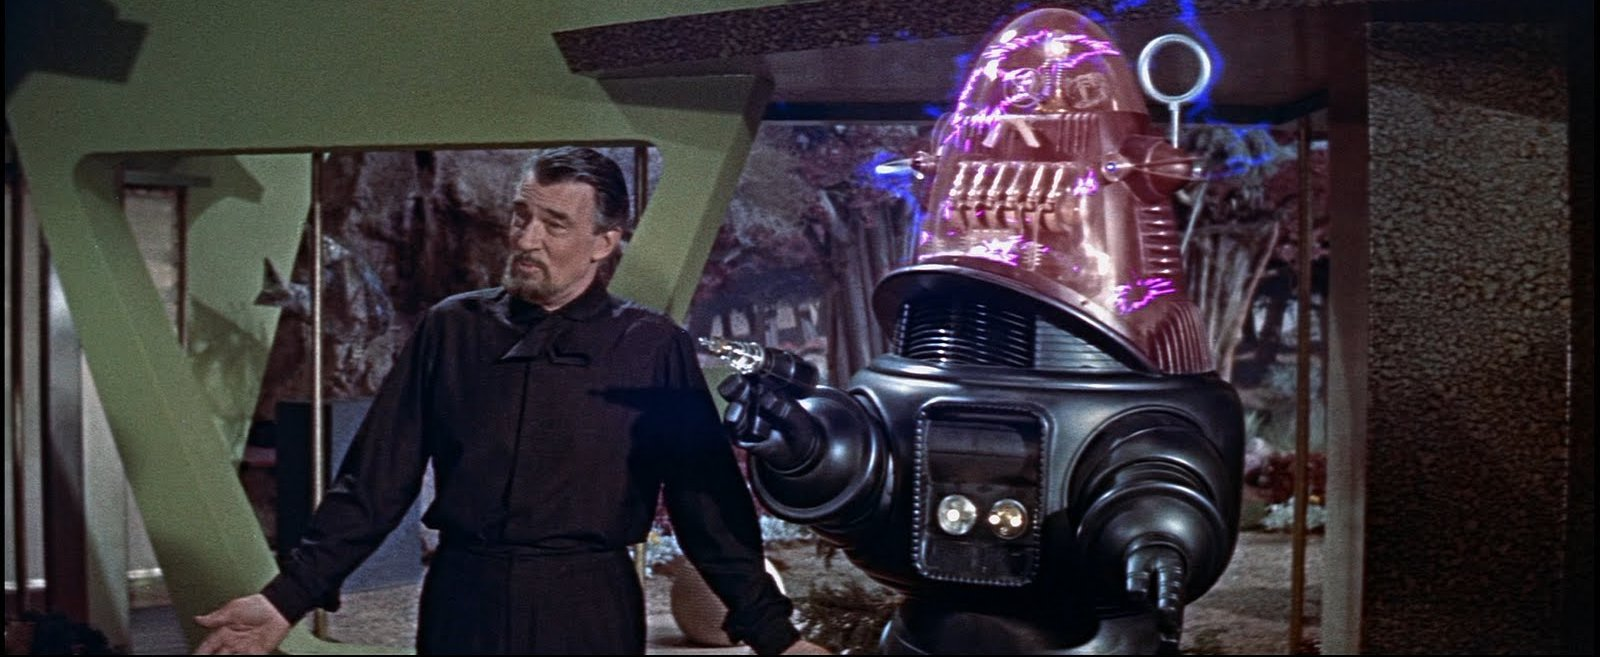 Robby the famous Robot